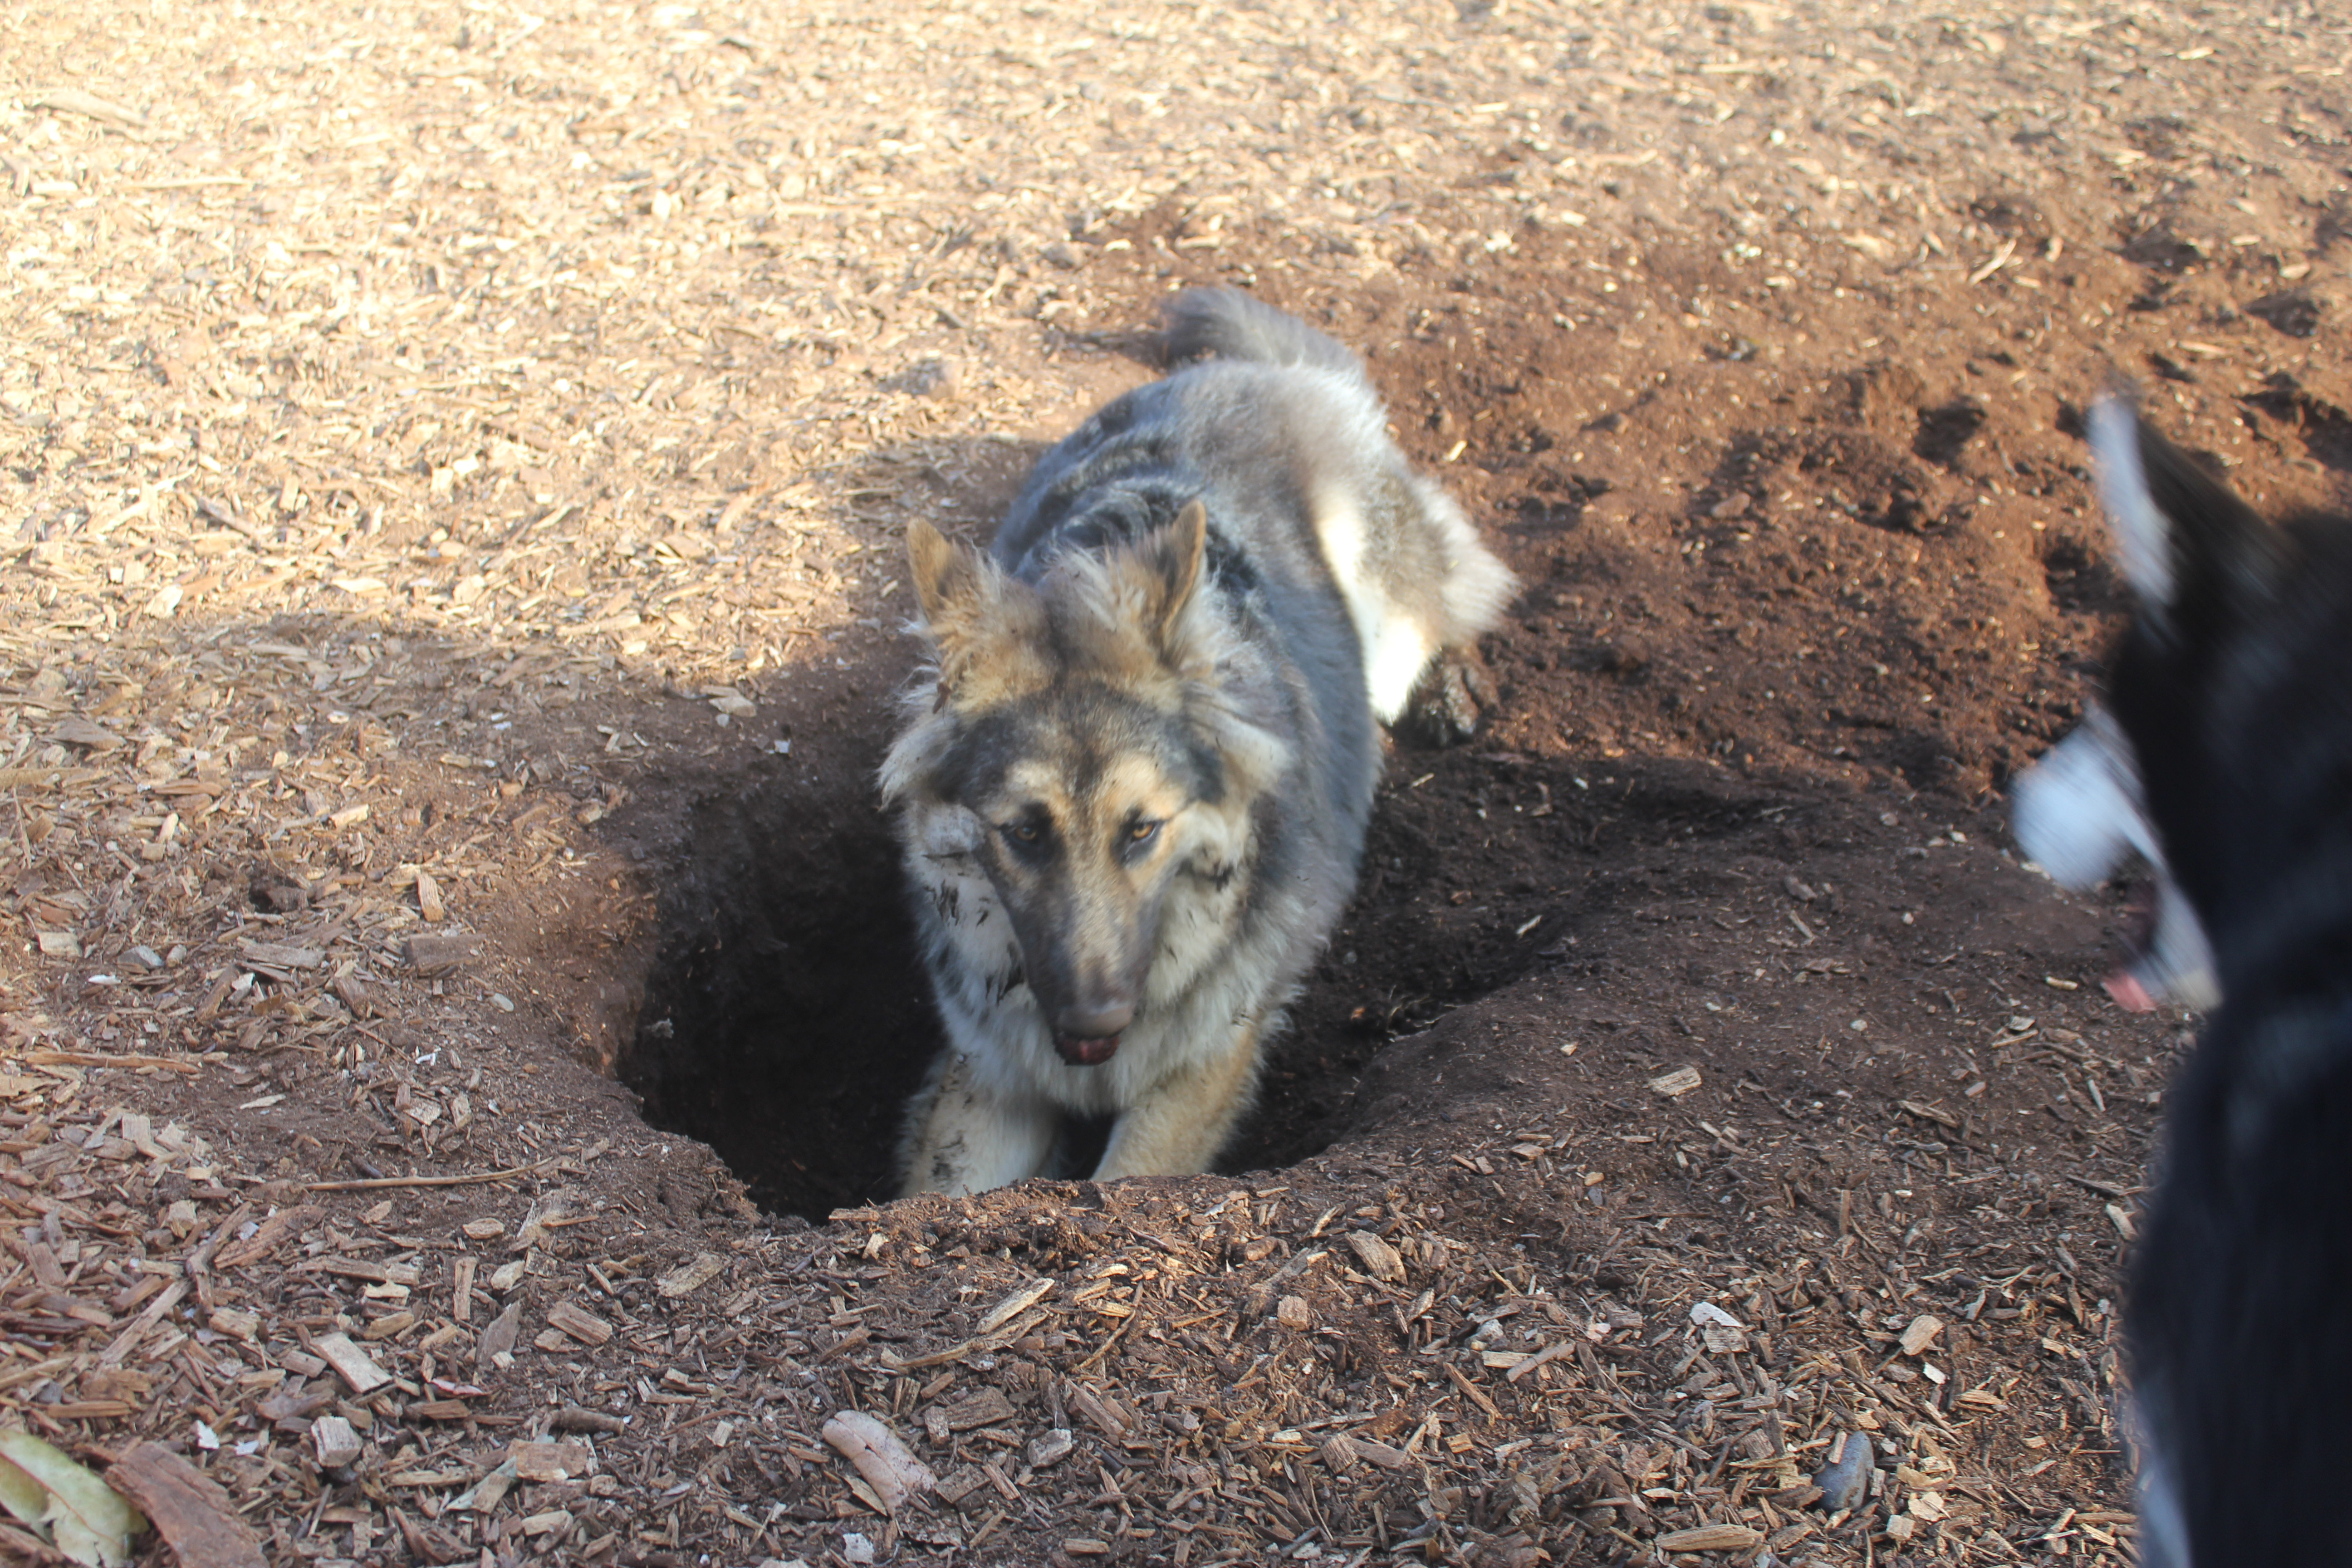 It's my hole - at least when Bandit isn't looking.